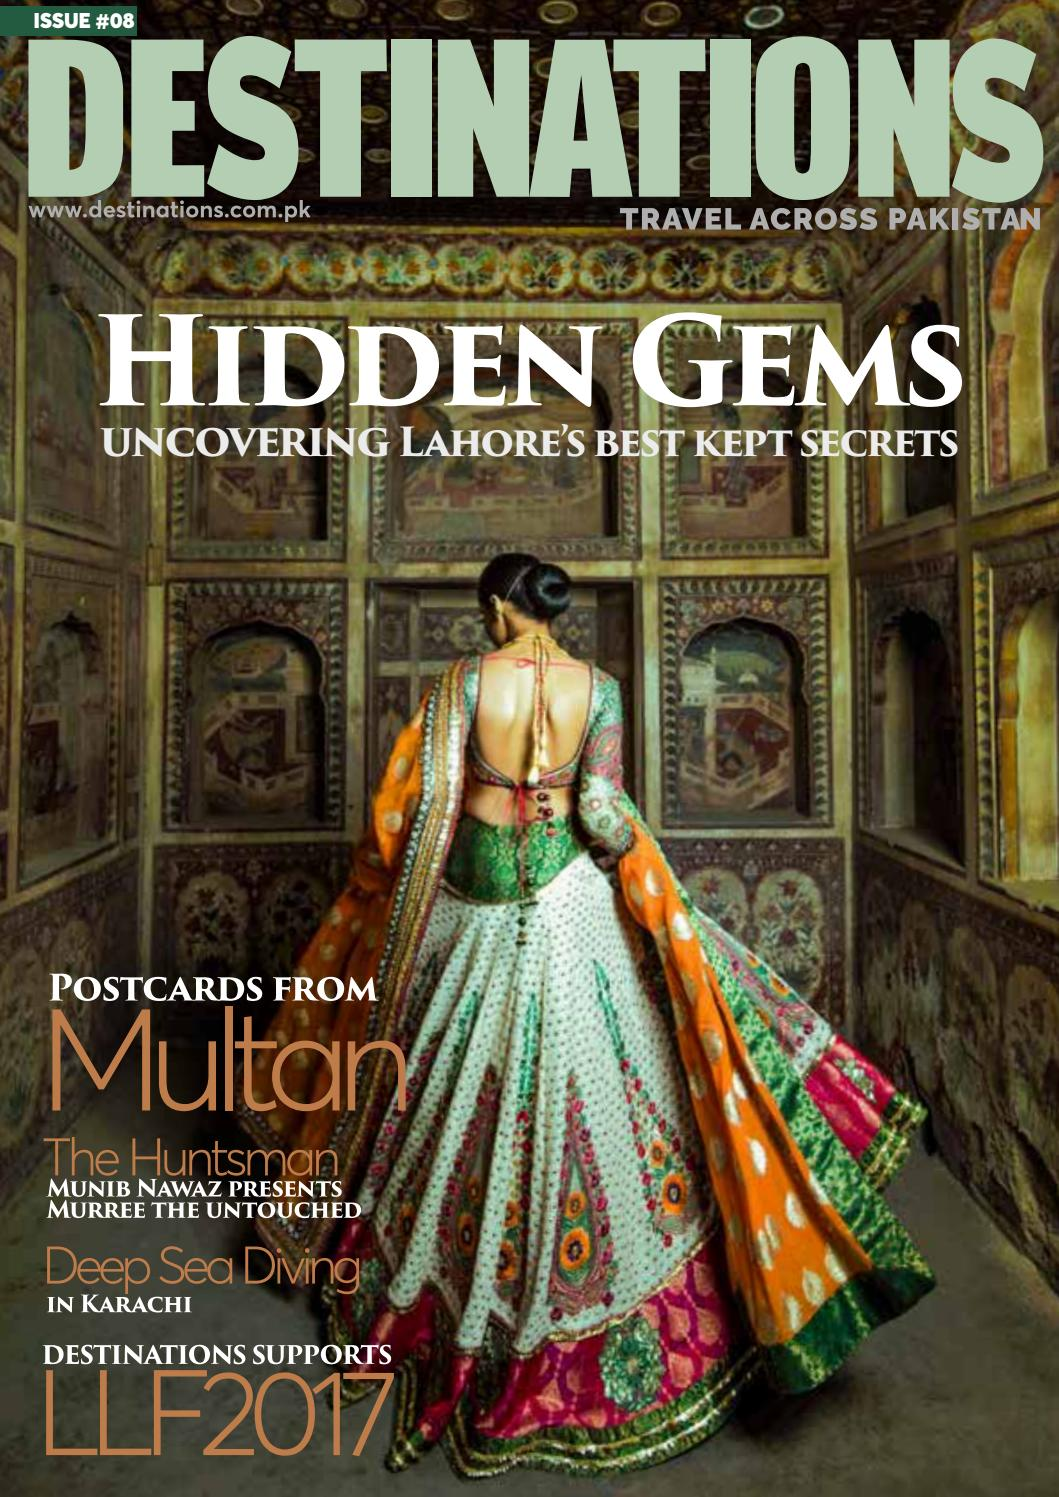 DESTINATIONS - Issue 8 - Pakistan's Premier Travel and